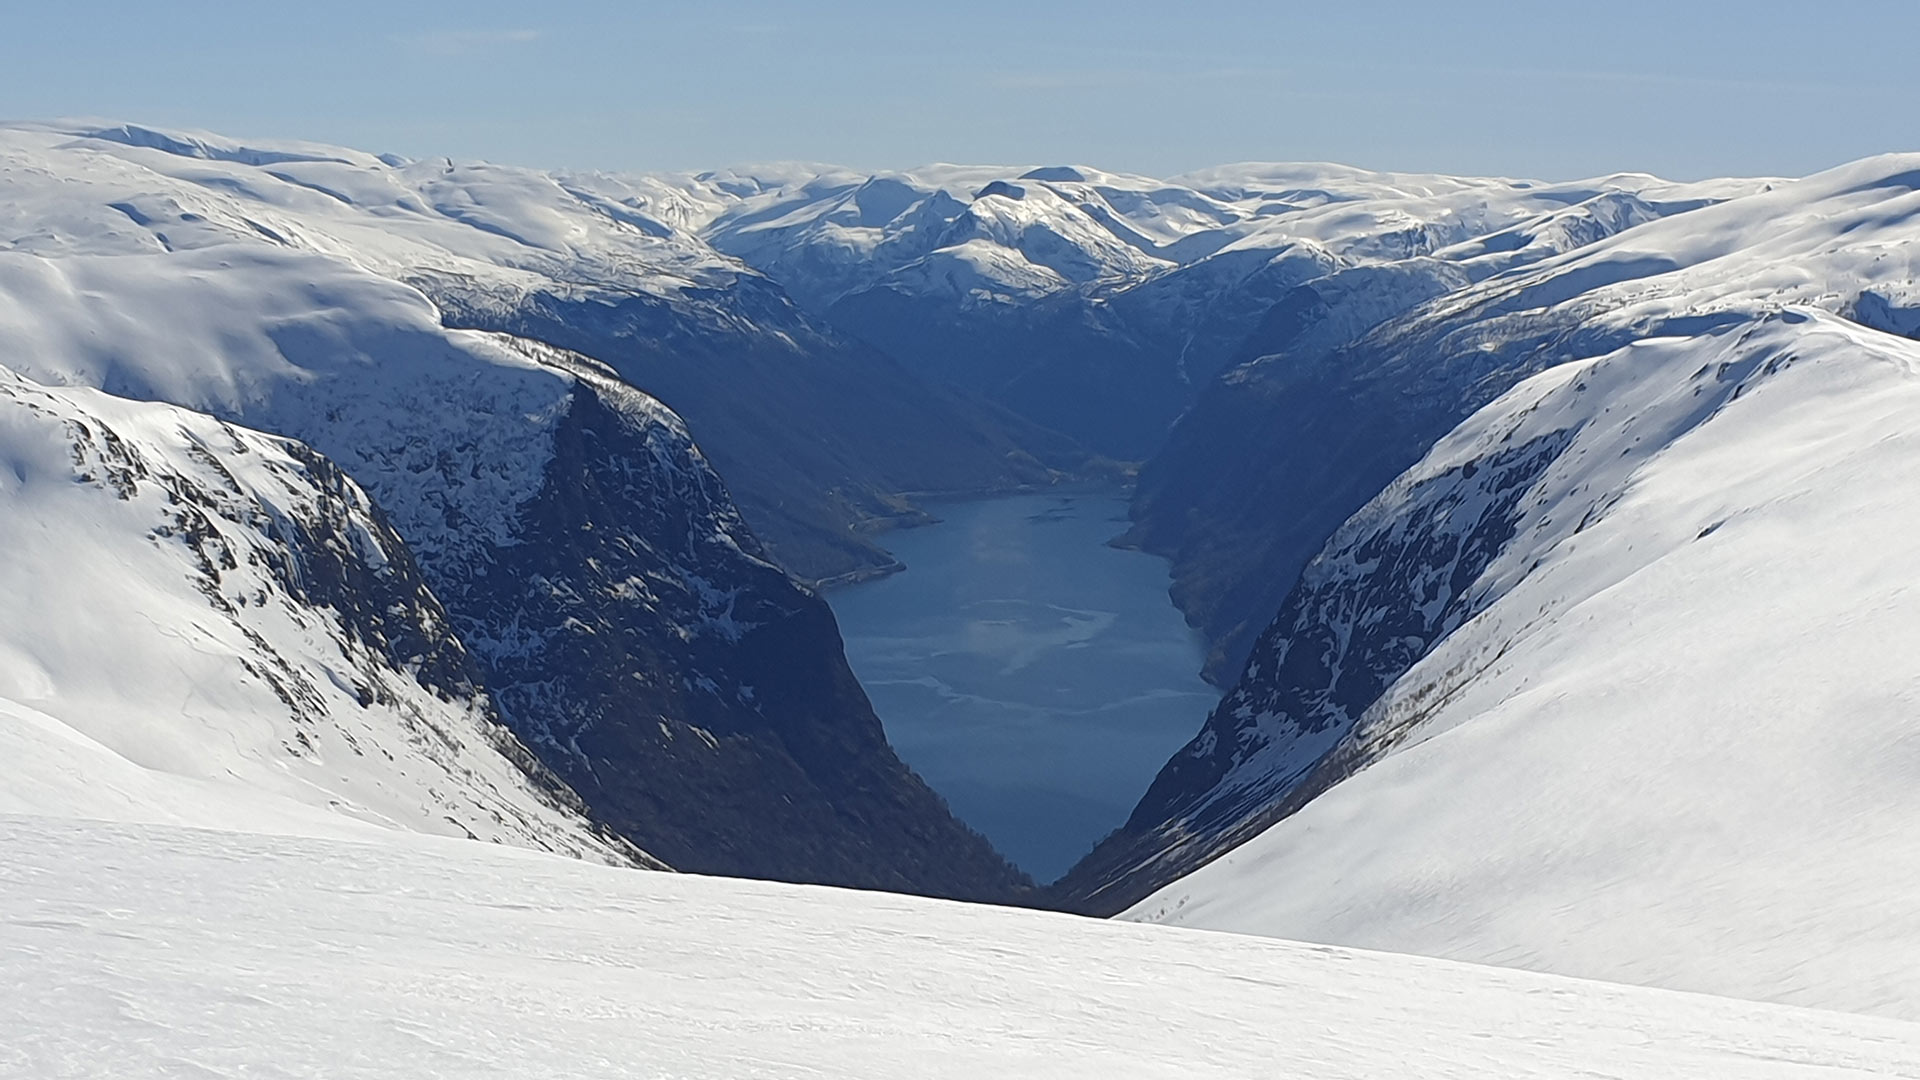 View over fjord and mountains.